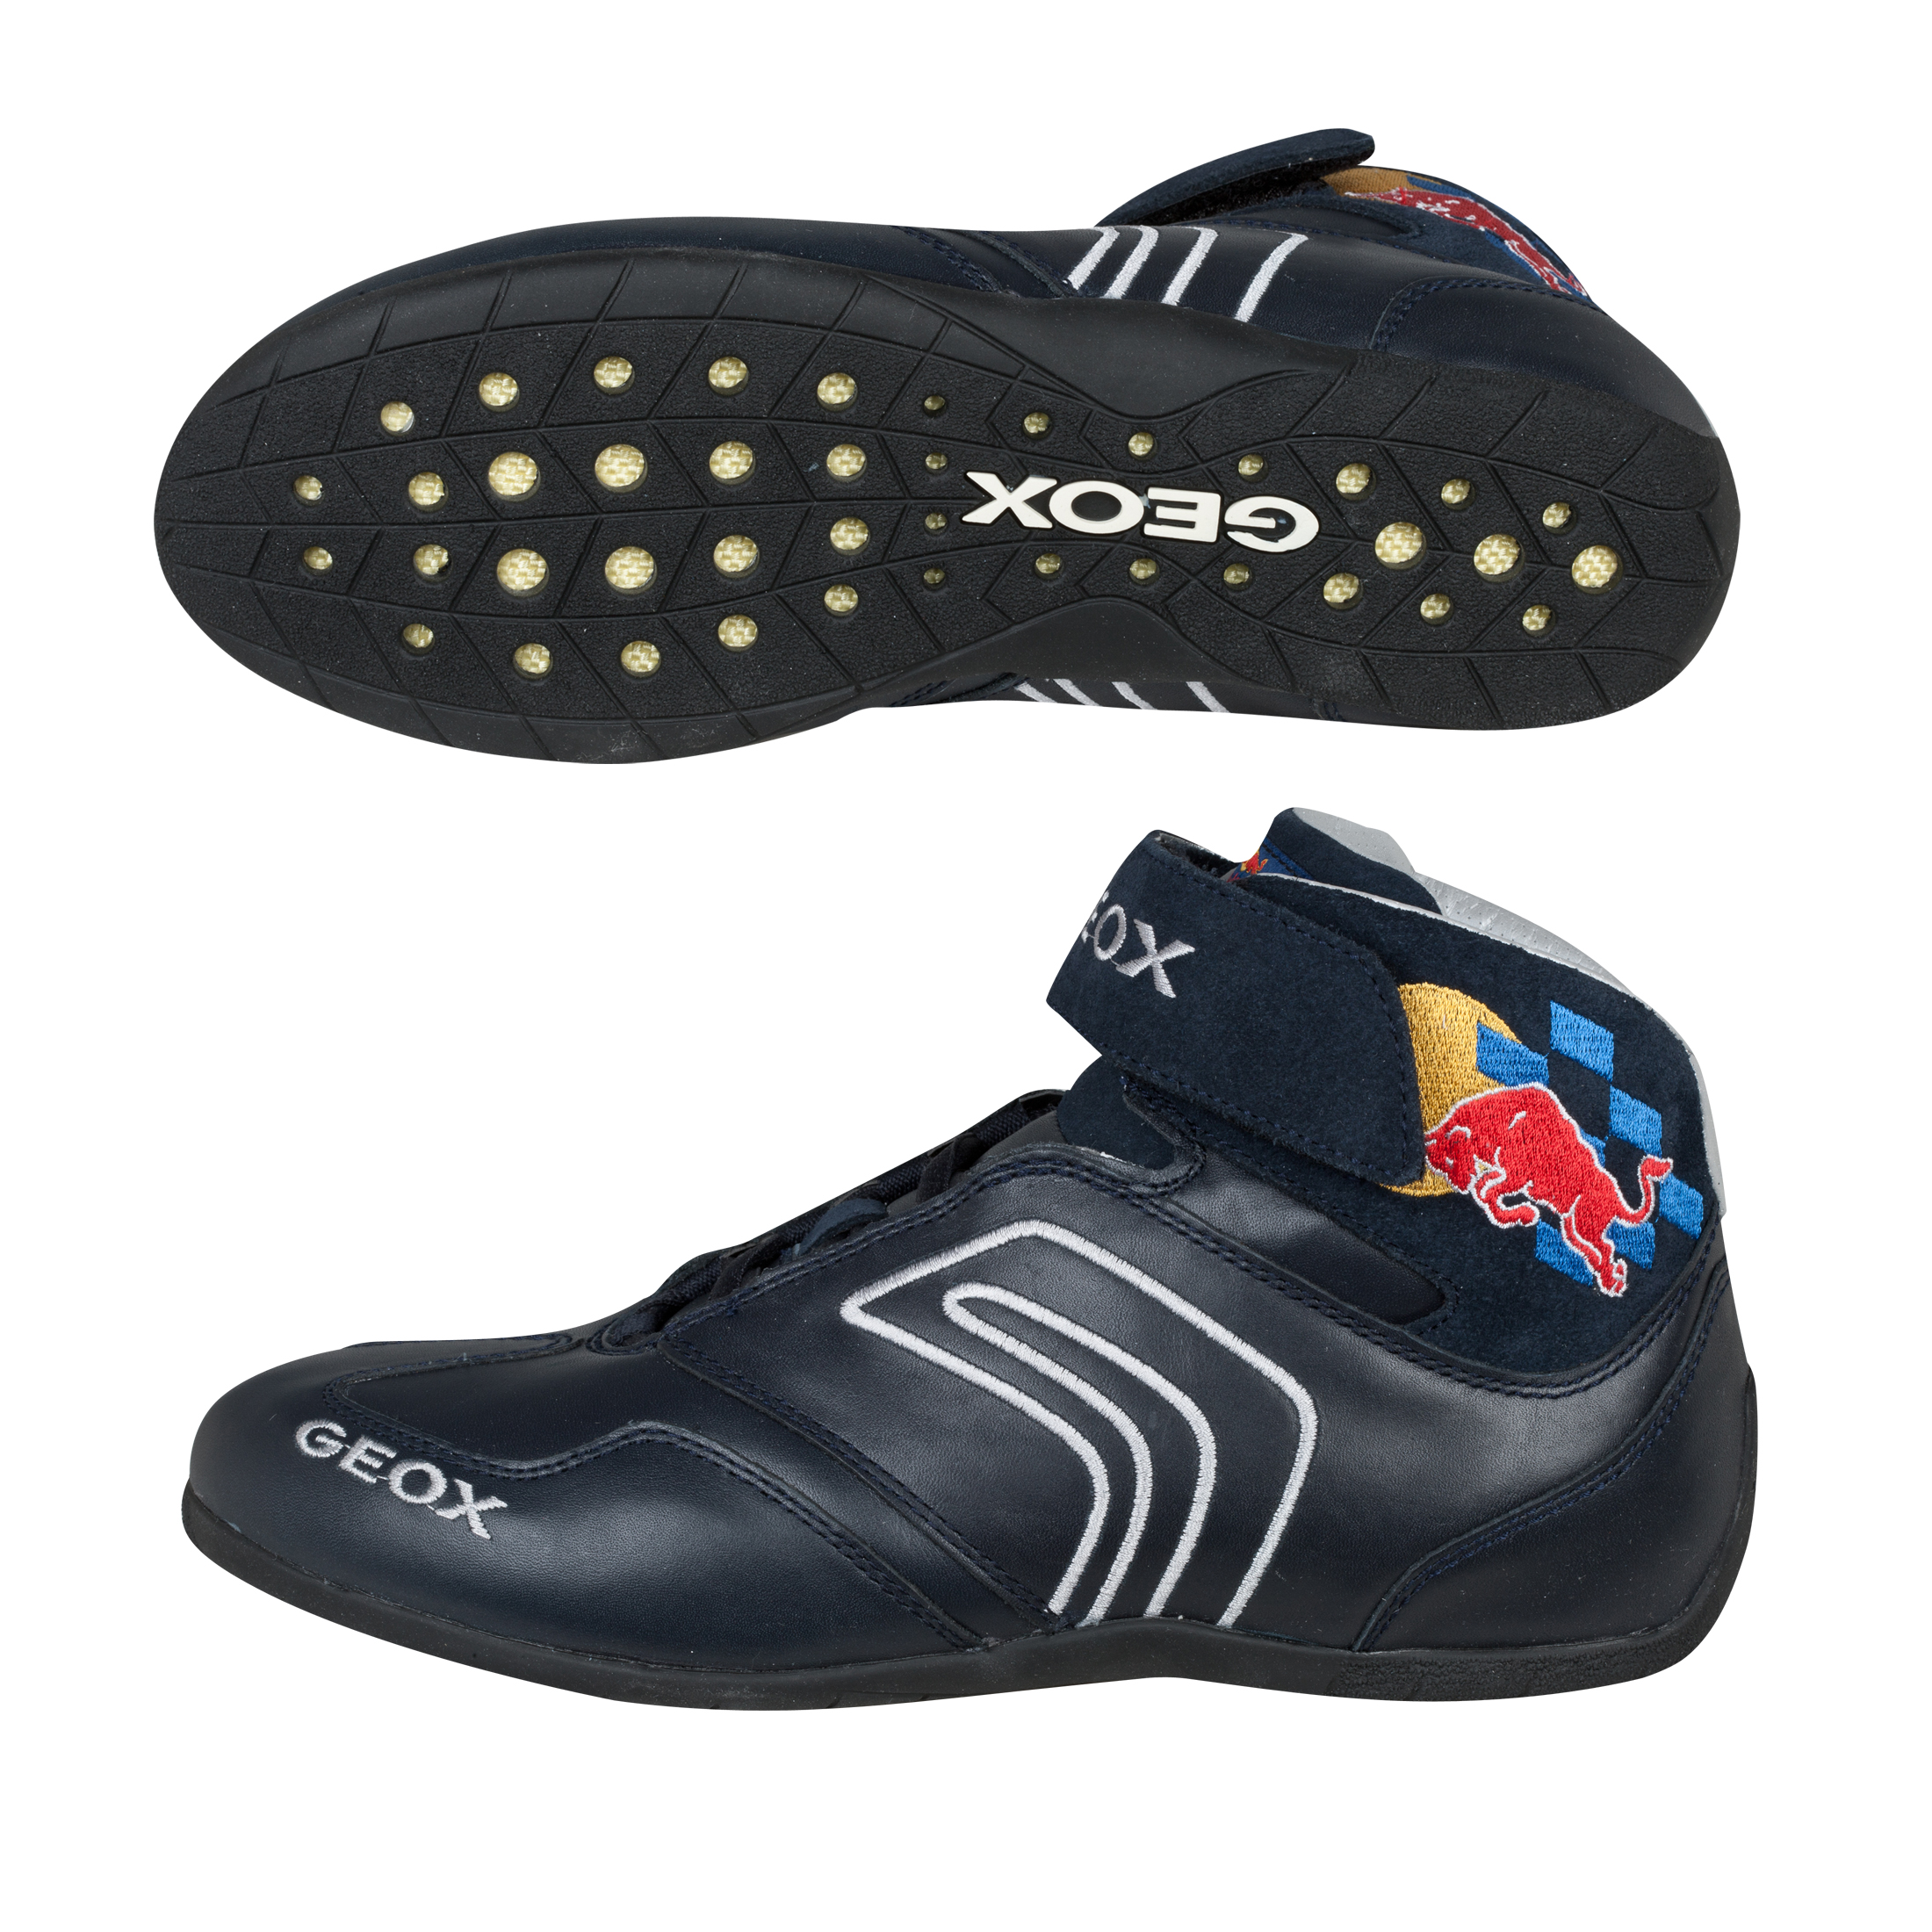 GEOX Red Bull Racing Driver Boot - Navy